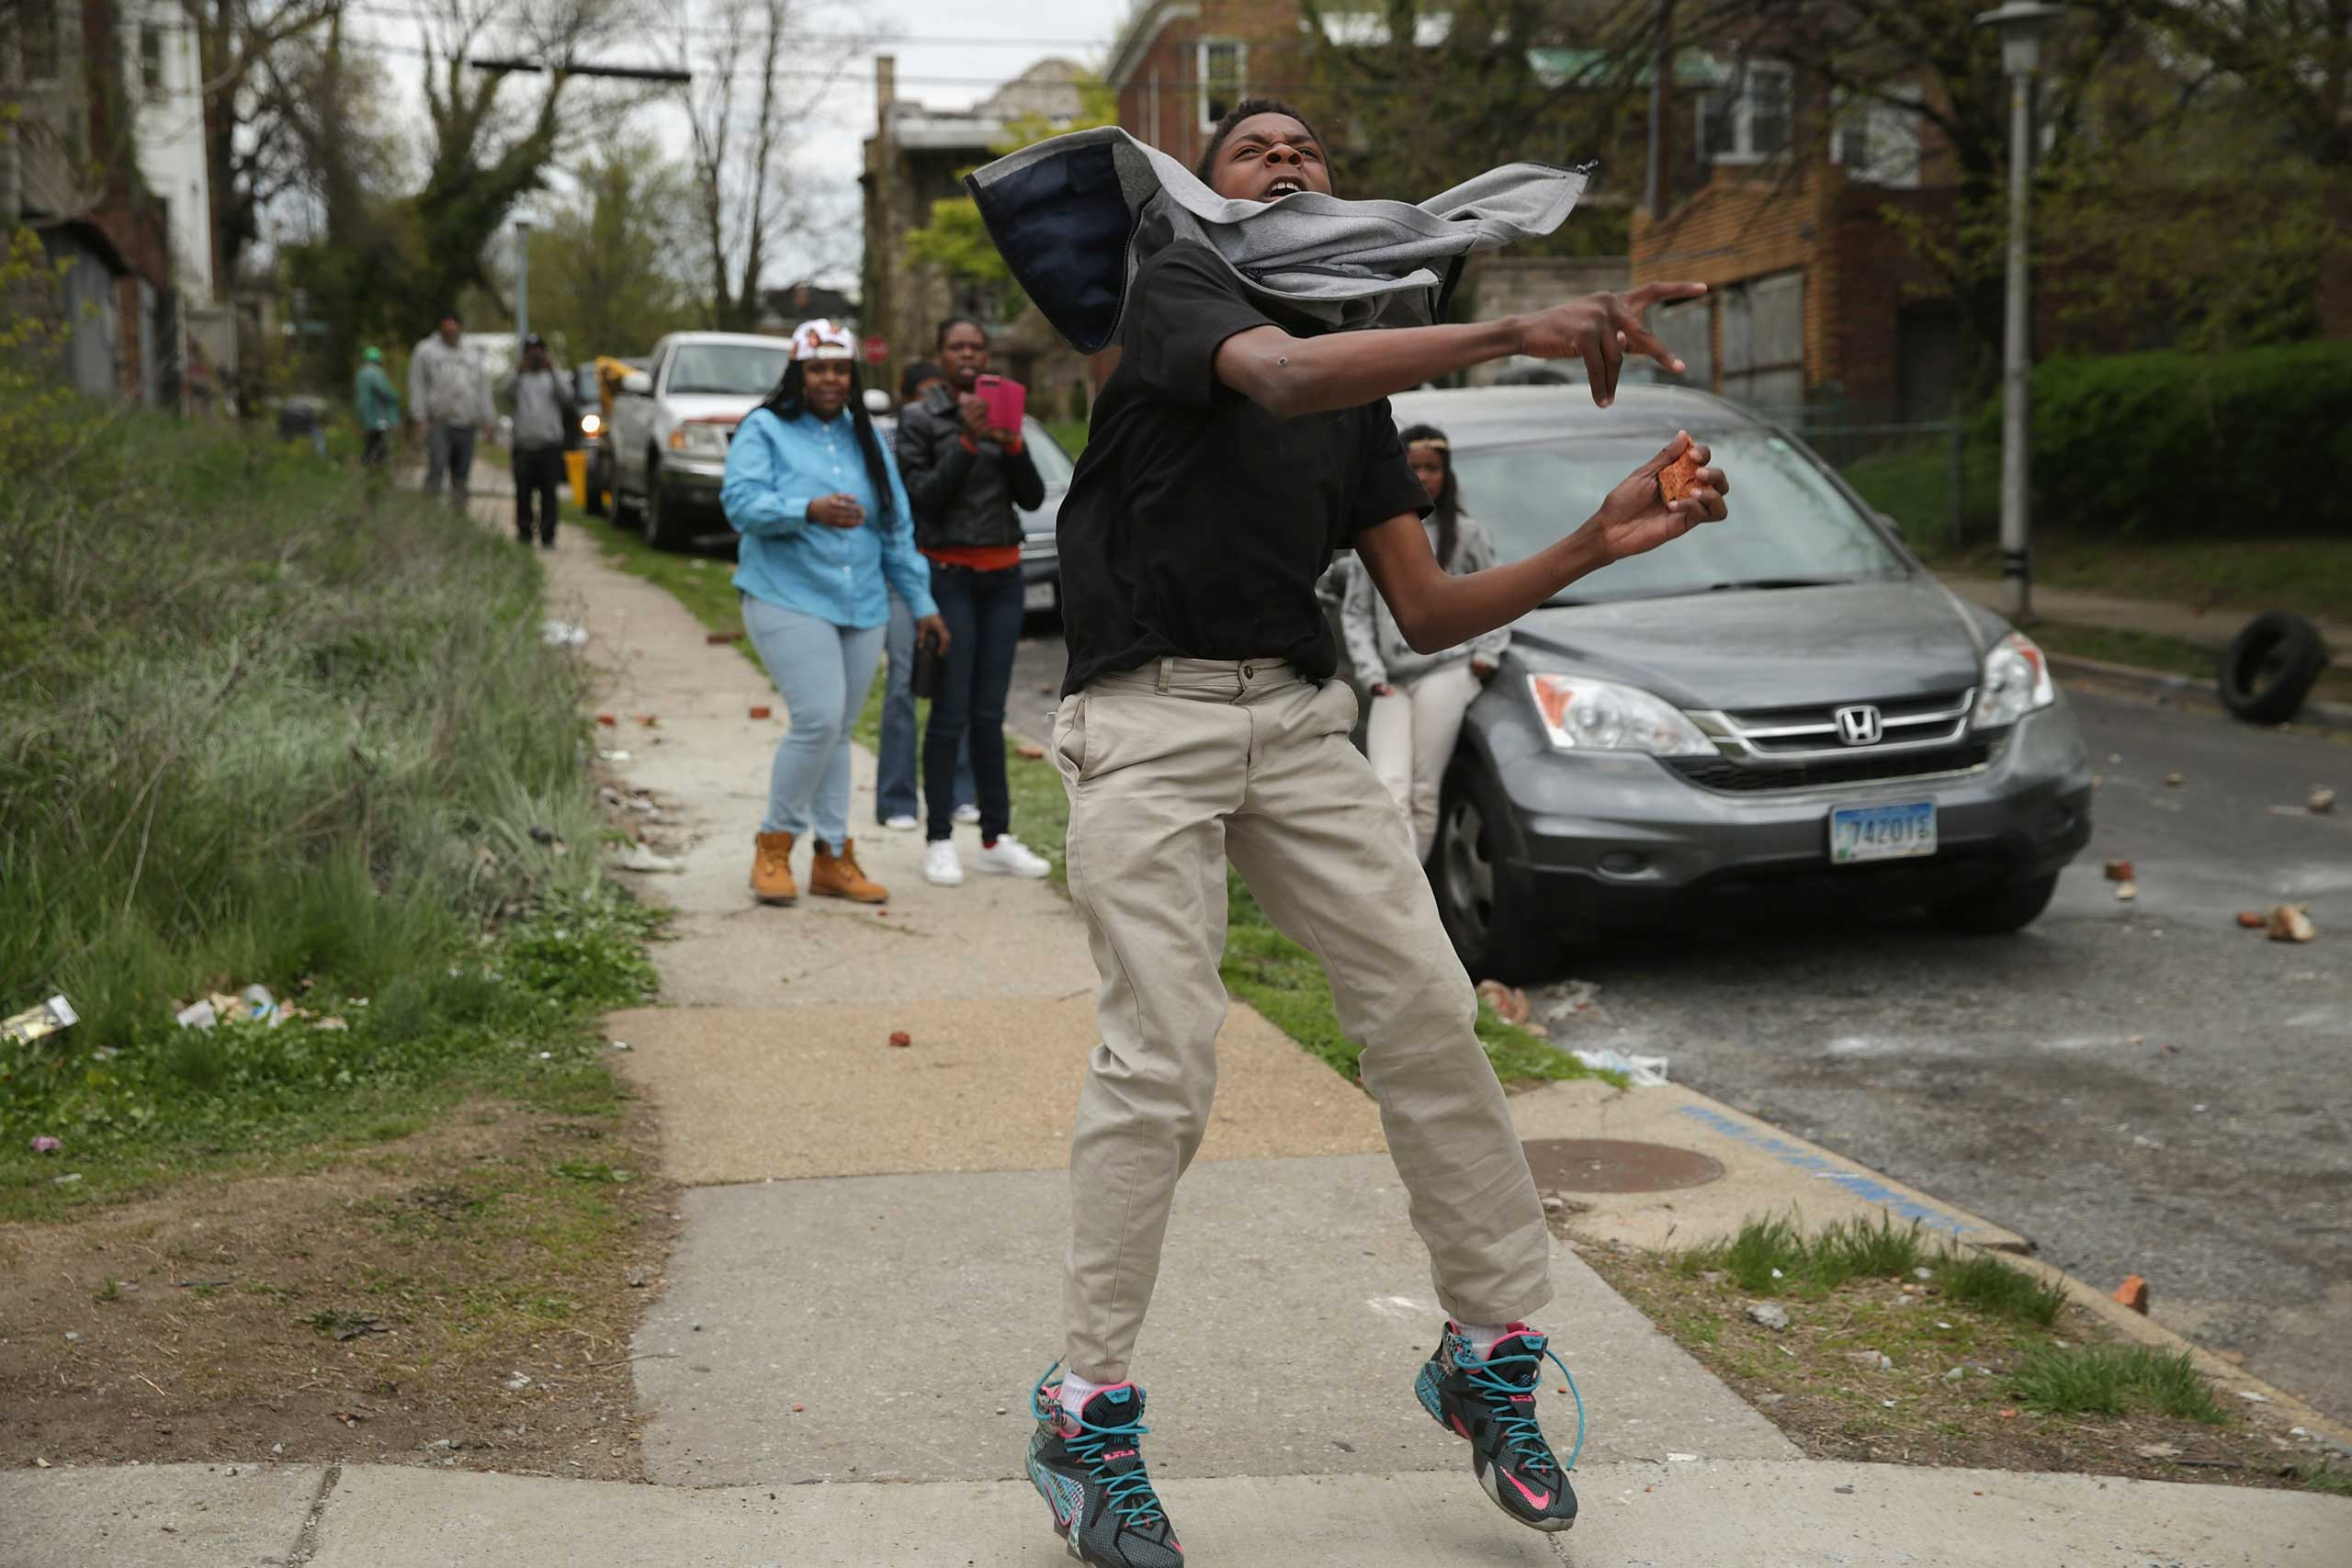 A man hurls a rock at Baltimore police officers outside the Mondawmin Mall following the funeral of Freddie Gray in Baltimore on April 27, 2015.